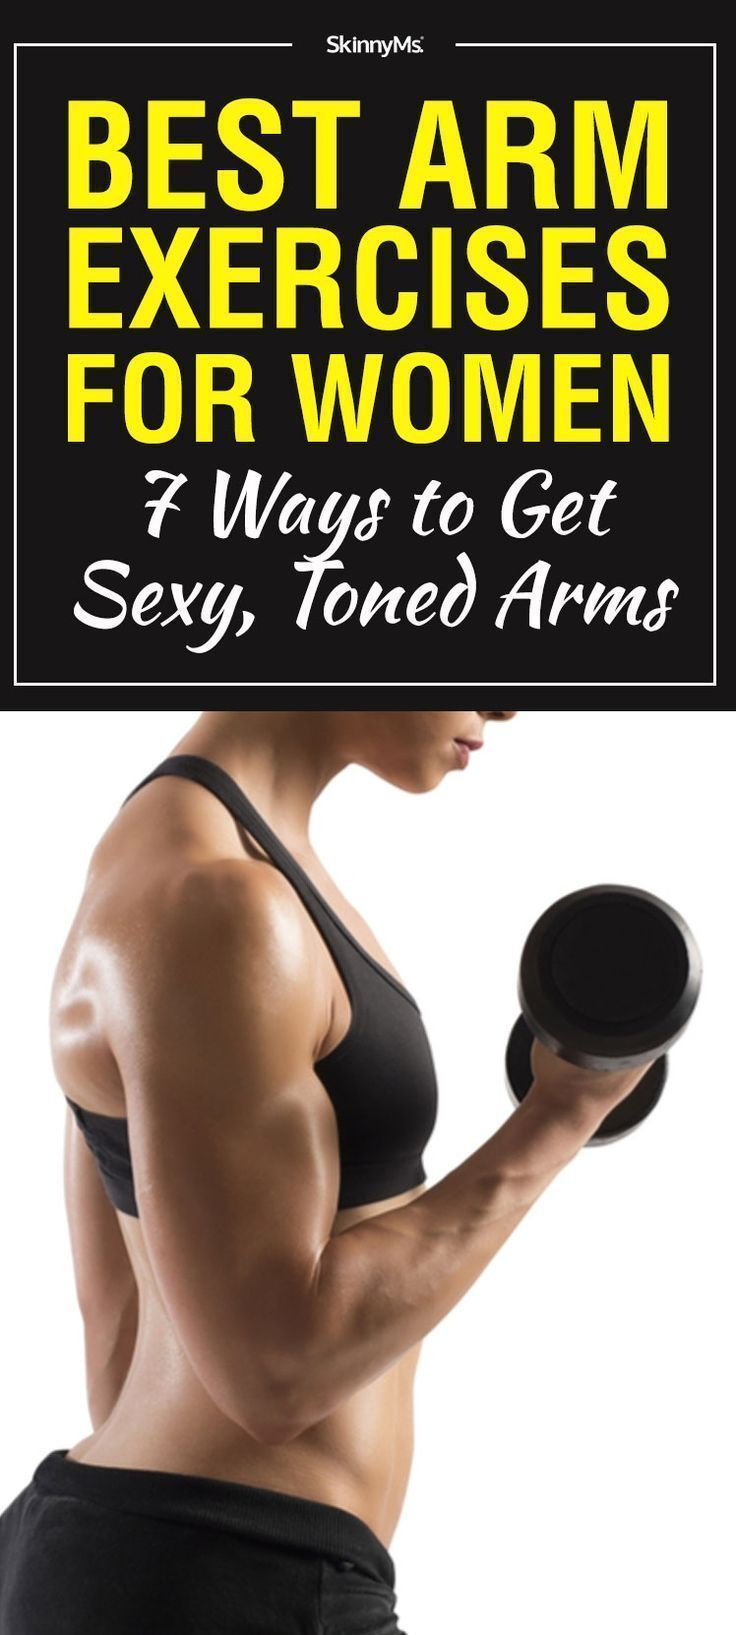 Whether you want to show off tight arms in a sexy gown, or simply grow stronger, these 7 best arm exercises for women are the perfect way to get started. #exerciseathomeforwomens #300workout Whether you want to show off tight arms in a sexy gown, or simply grow stronger, these 7 best arm exercises for women are the perfect way to get started. #exerciseathomeforwomens #300workout Whether you want to show off tight arms in a sexy gown, or simply grow stronger, these 7 best arm exercises for women #300workout